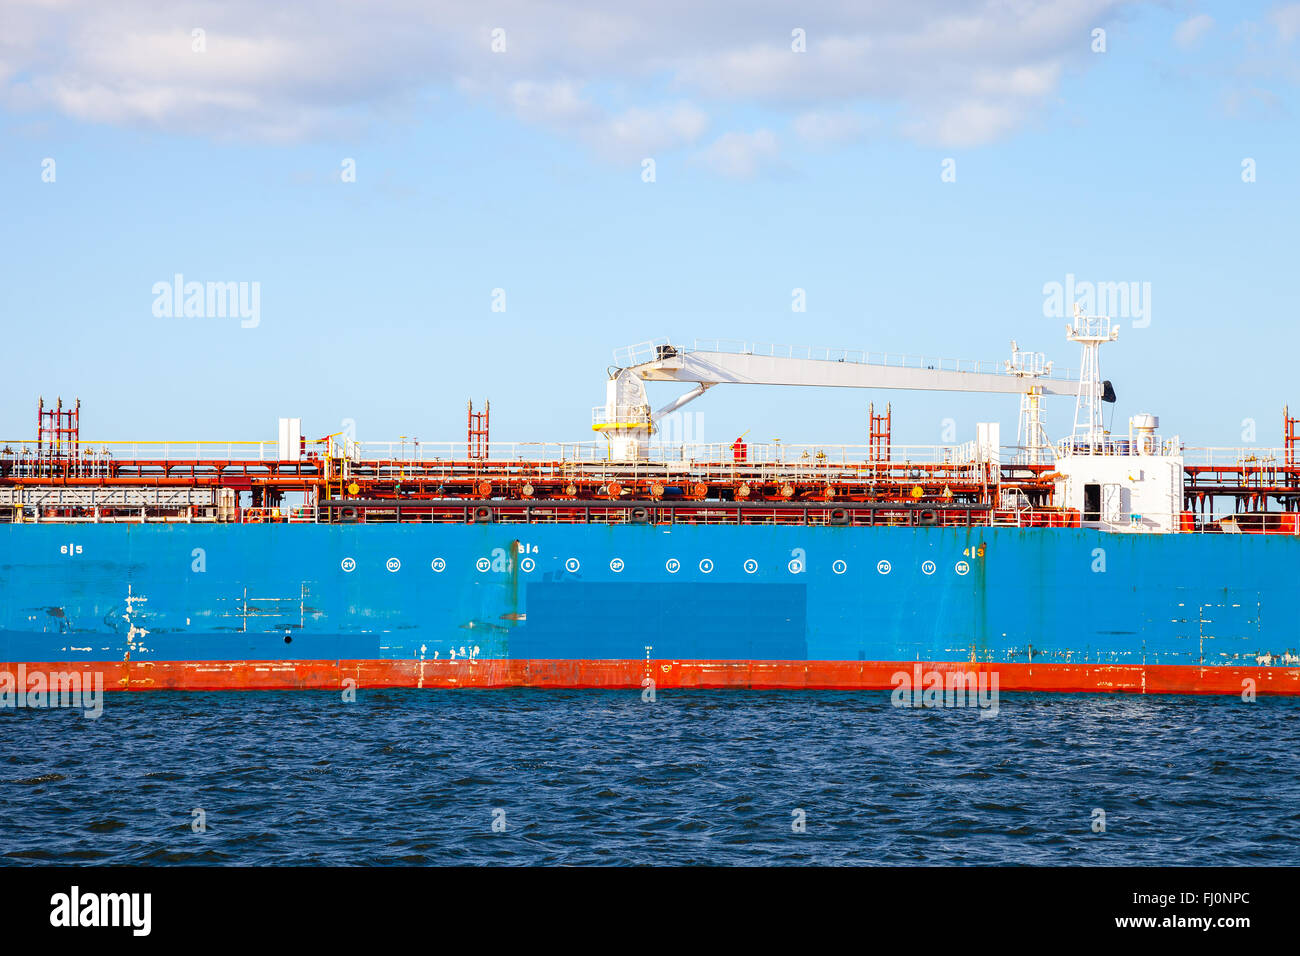 Description manifold on the deck of chemical tanker ship. Stock Photo